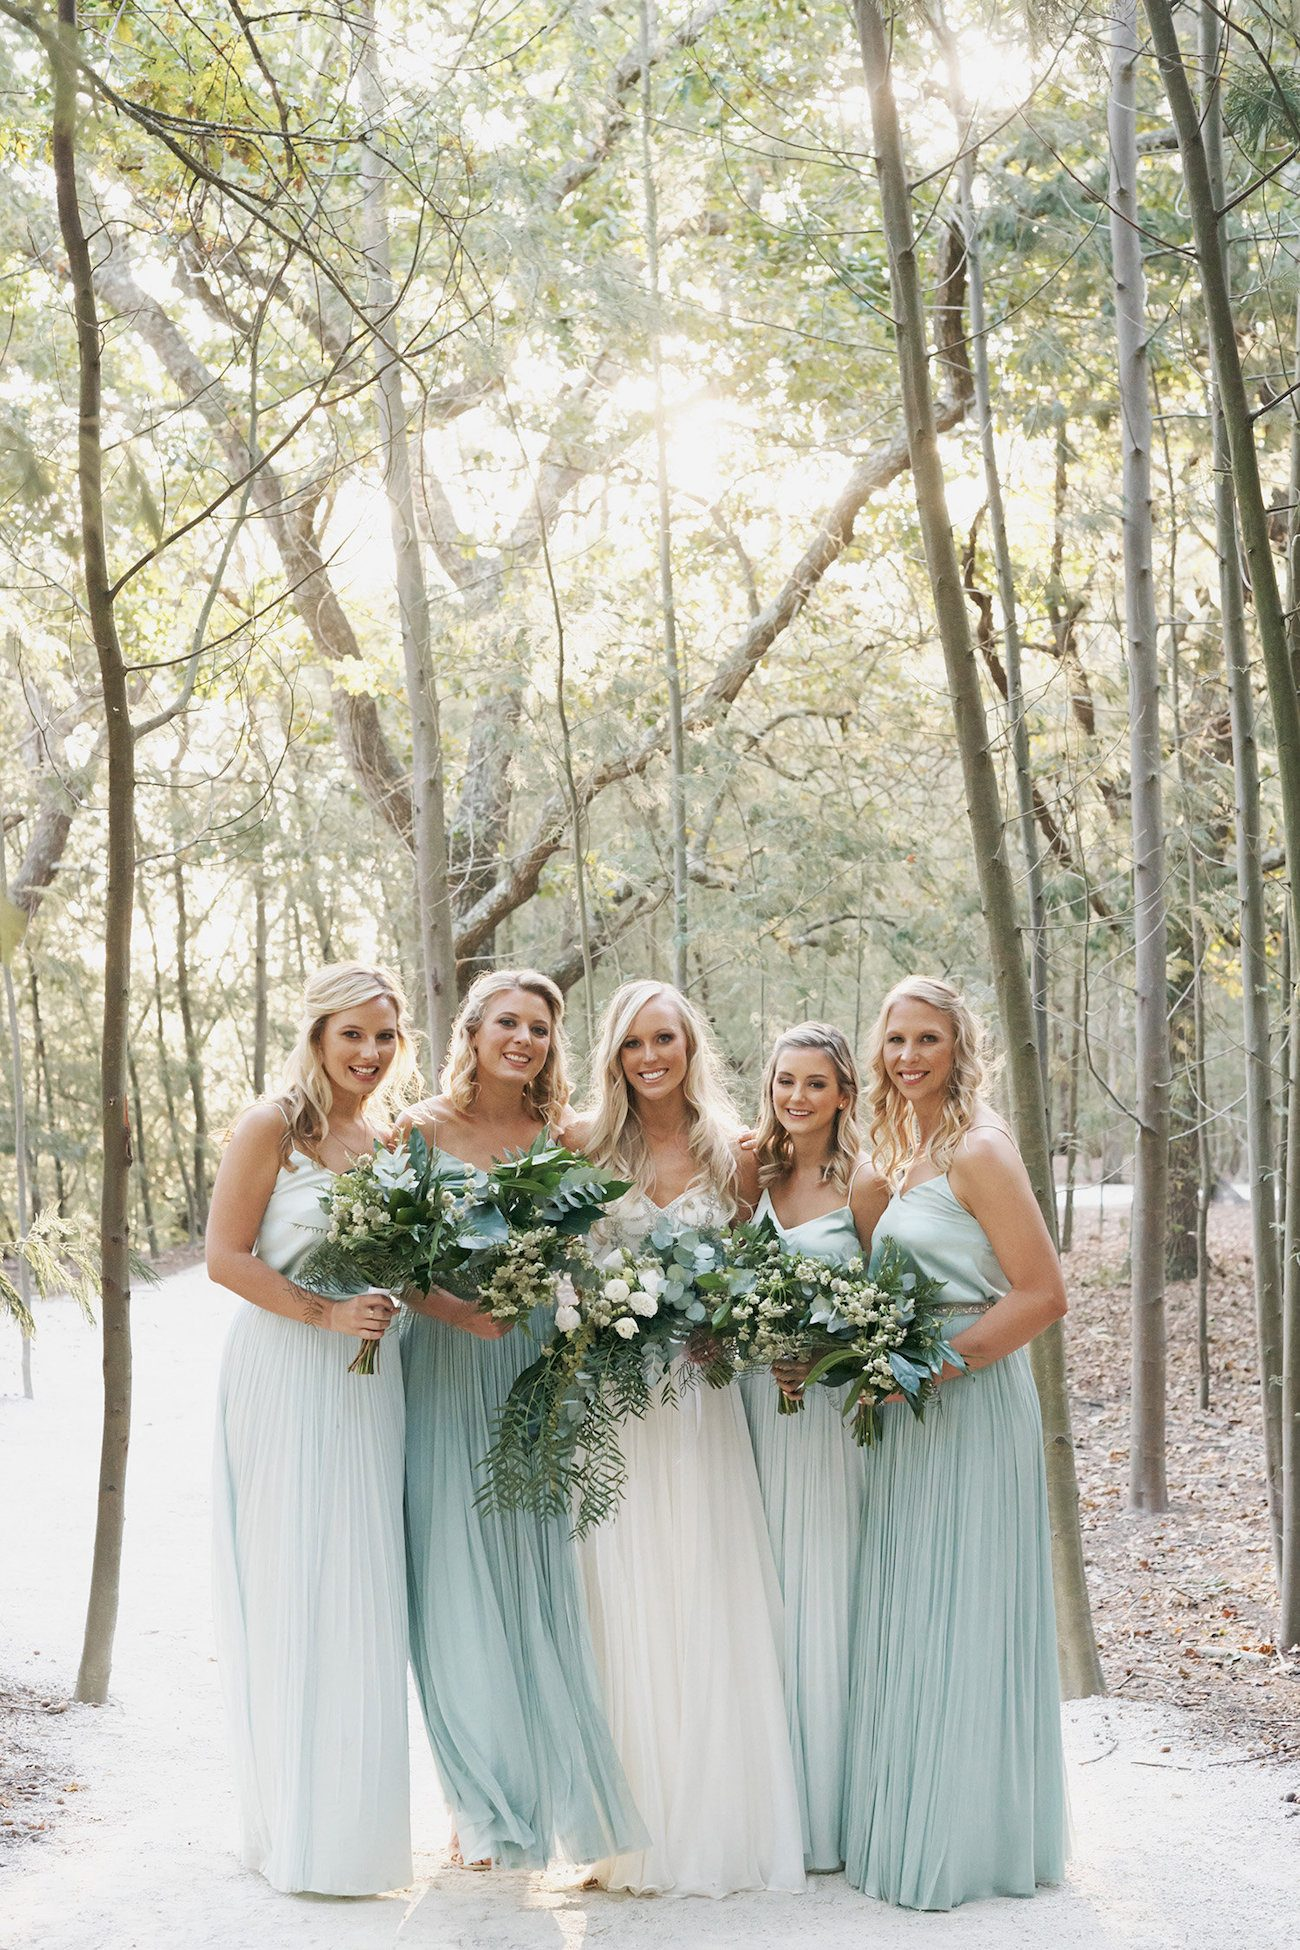 Mint Catherine Deane Bridesmaid Dresses | Image: Knit Together Photography